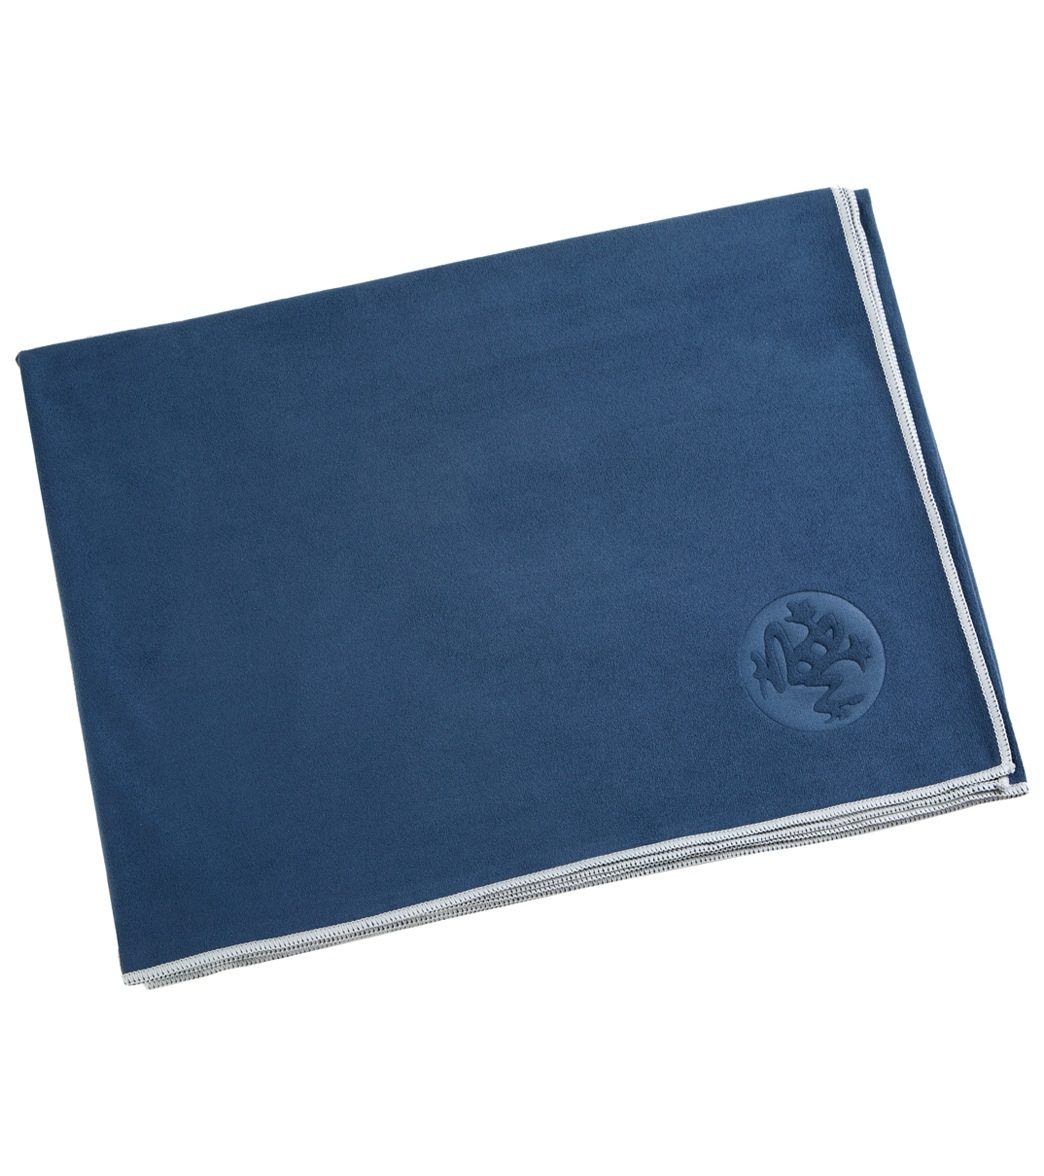 Manduka Equa Studio Yoga Mat Towel At Swimoutlet Com